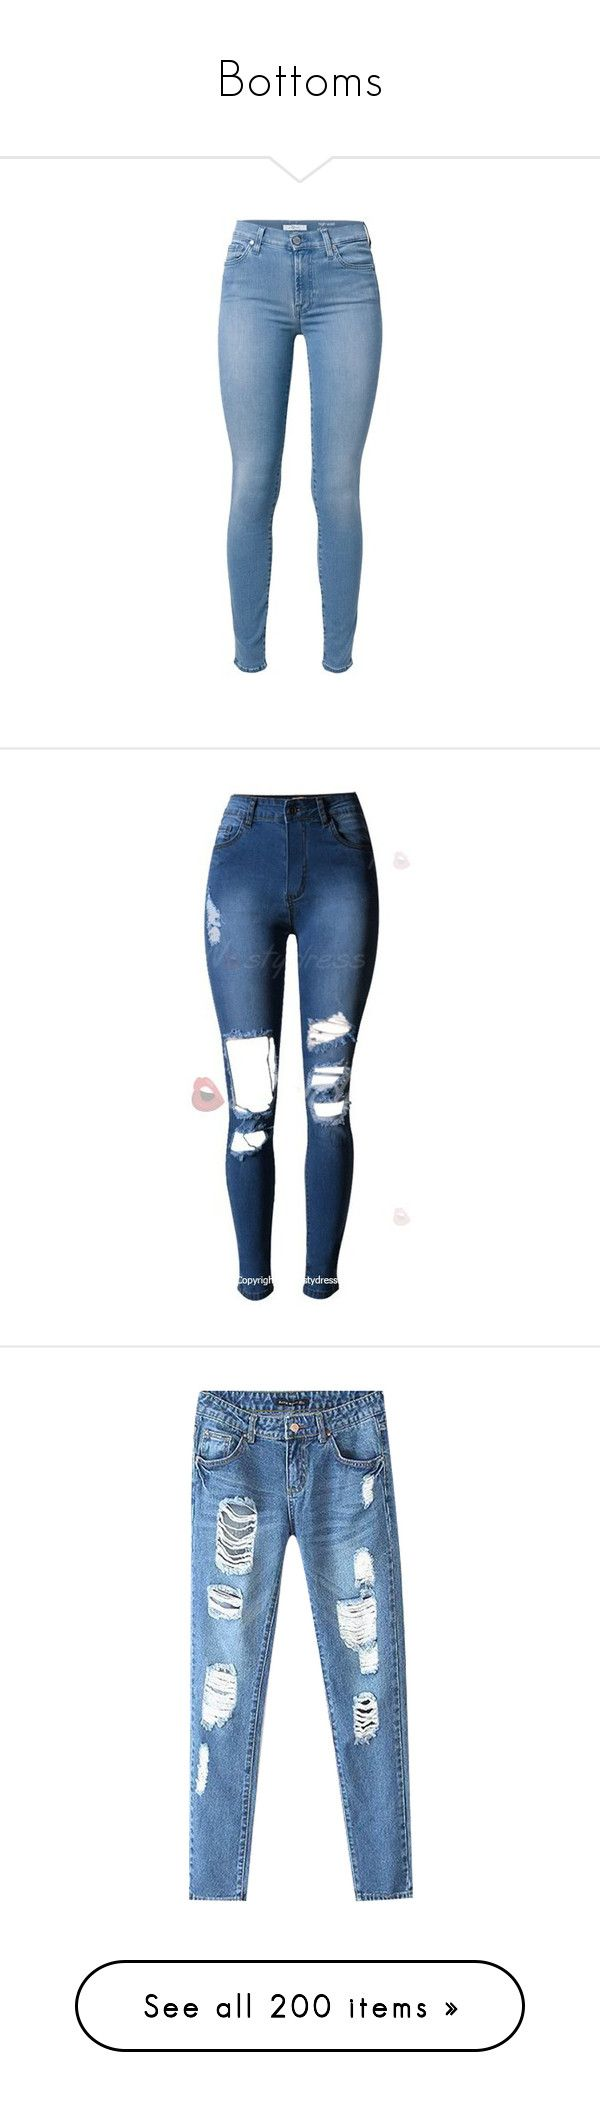 """Bottoms"" by amfaazevedo-gi ❤ liked on Polyvore featuring jeans, pants, bottoms, calças, light blue, skinny fit denim jeans, light blue jeans, blue skinny jeans, skinny fit jeans and skinny jeans"